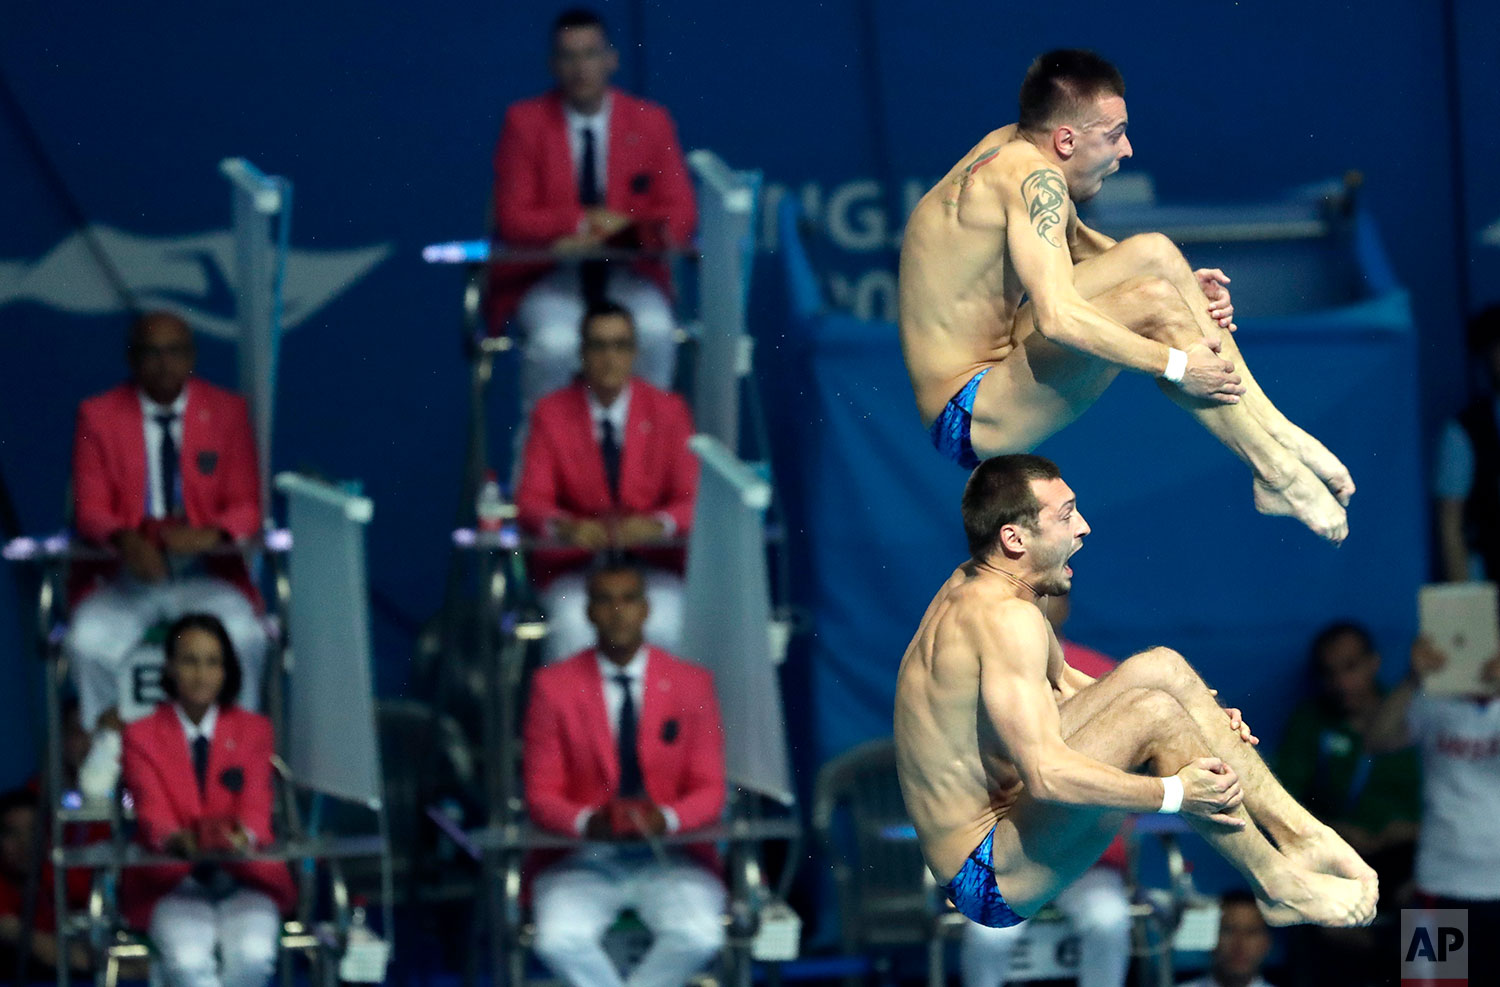 Russia's Aleksandr Bondar and Viktor Minibaev compete in the men's 10m platform synchro diving final at the World Swimming Championships in Gwangju, South Korea, Monday, July 15, 2019. (AP Photo/Lee Jin-man )